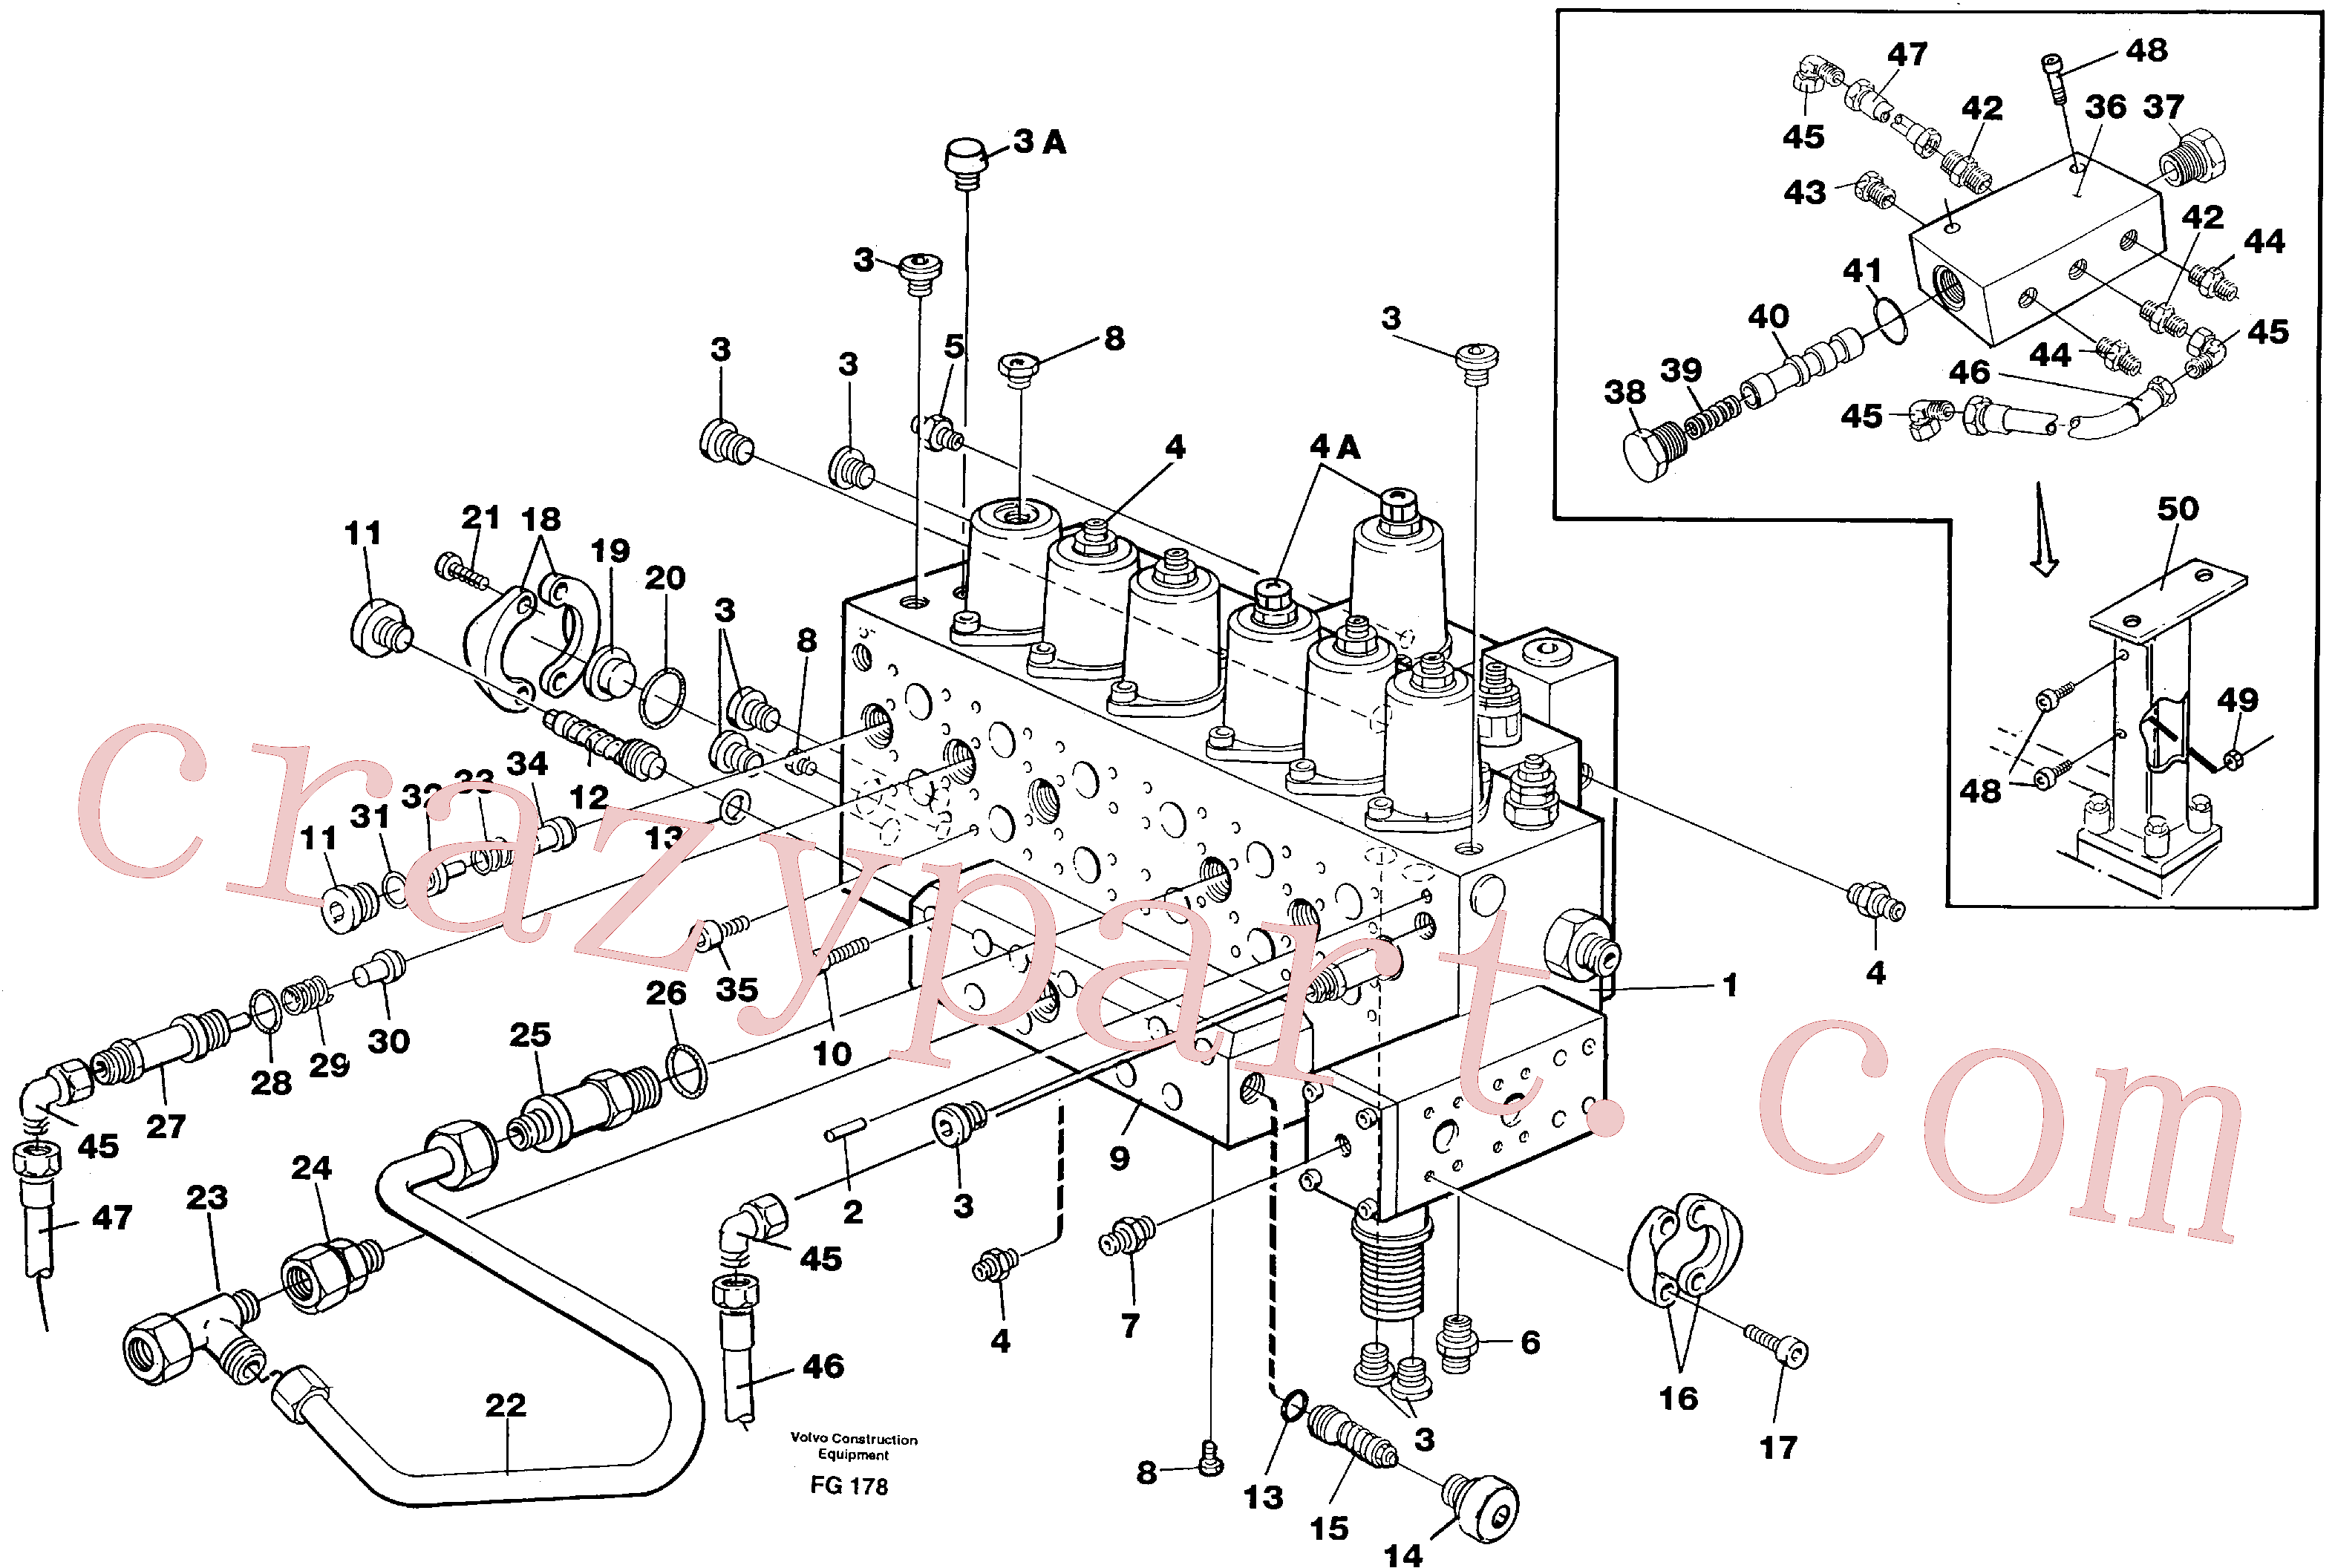 VOE14343365 for Volvo Main valve assembly, tubes connections, assembly bloc(FG178 assembly)